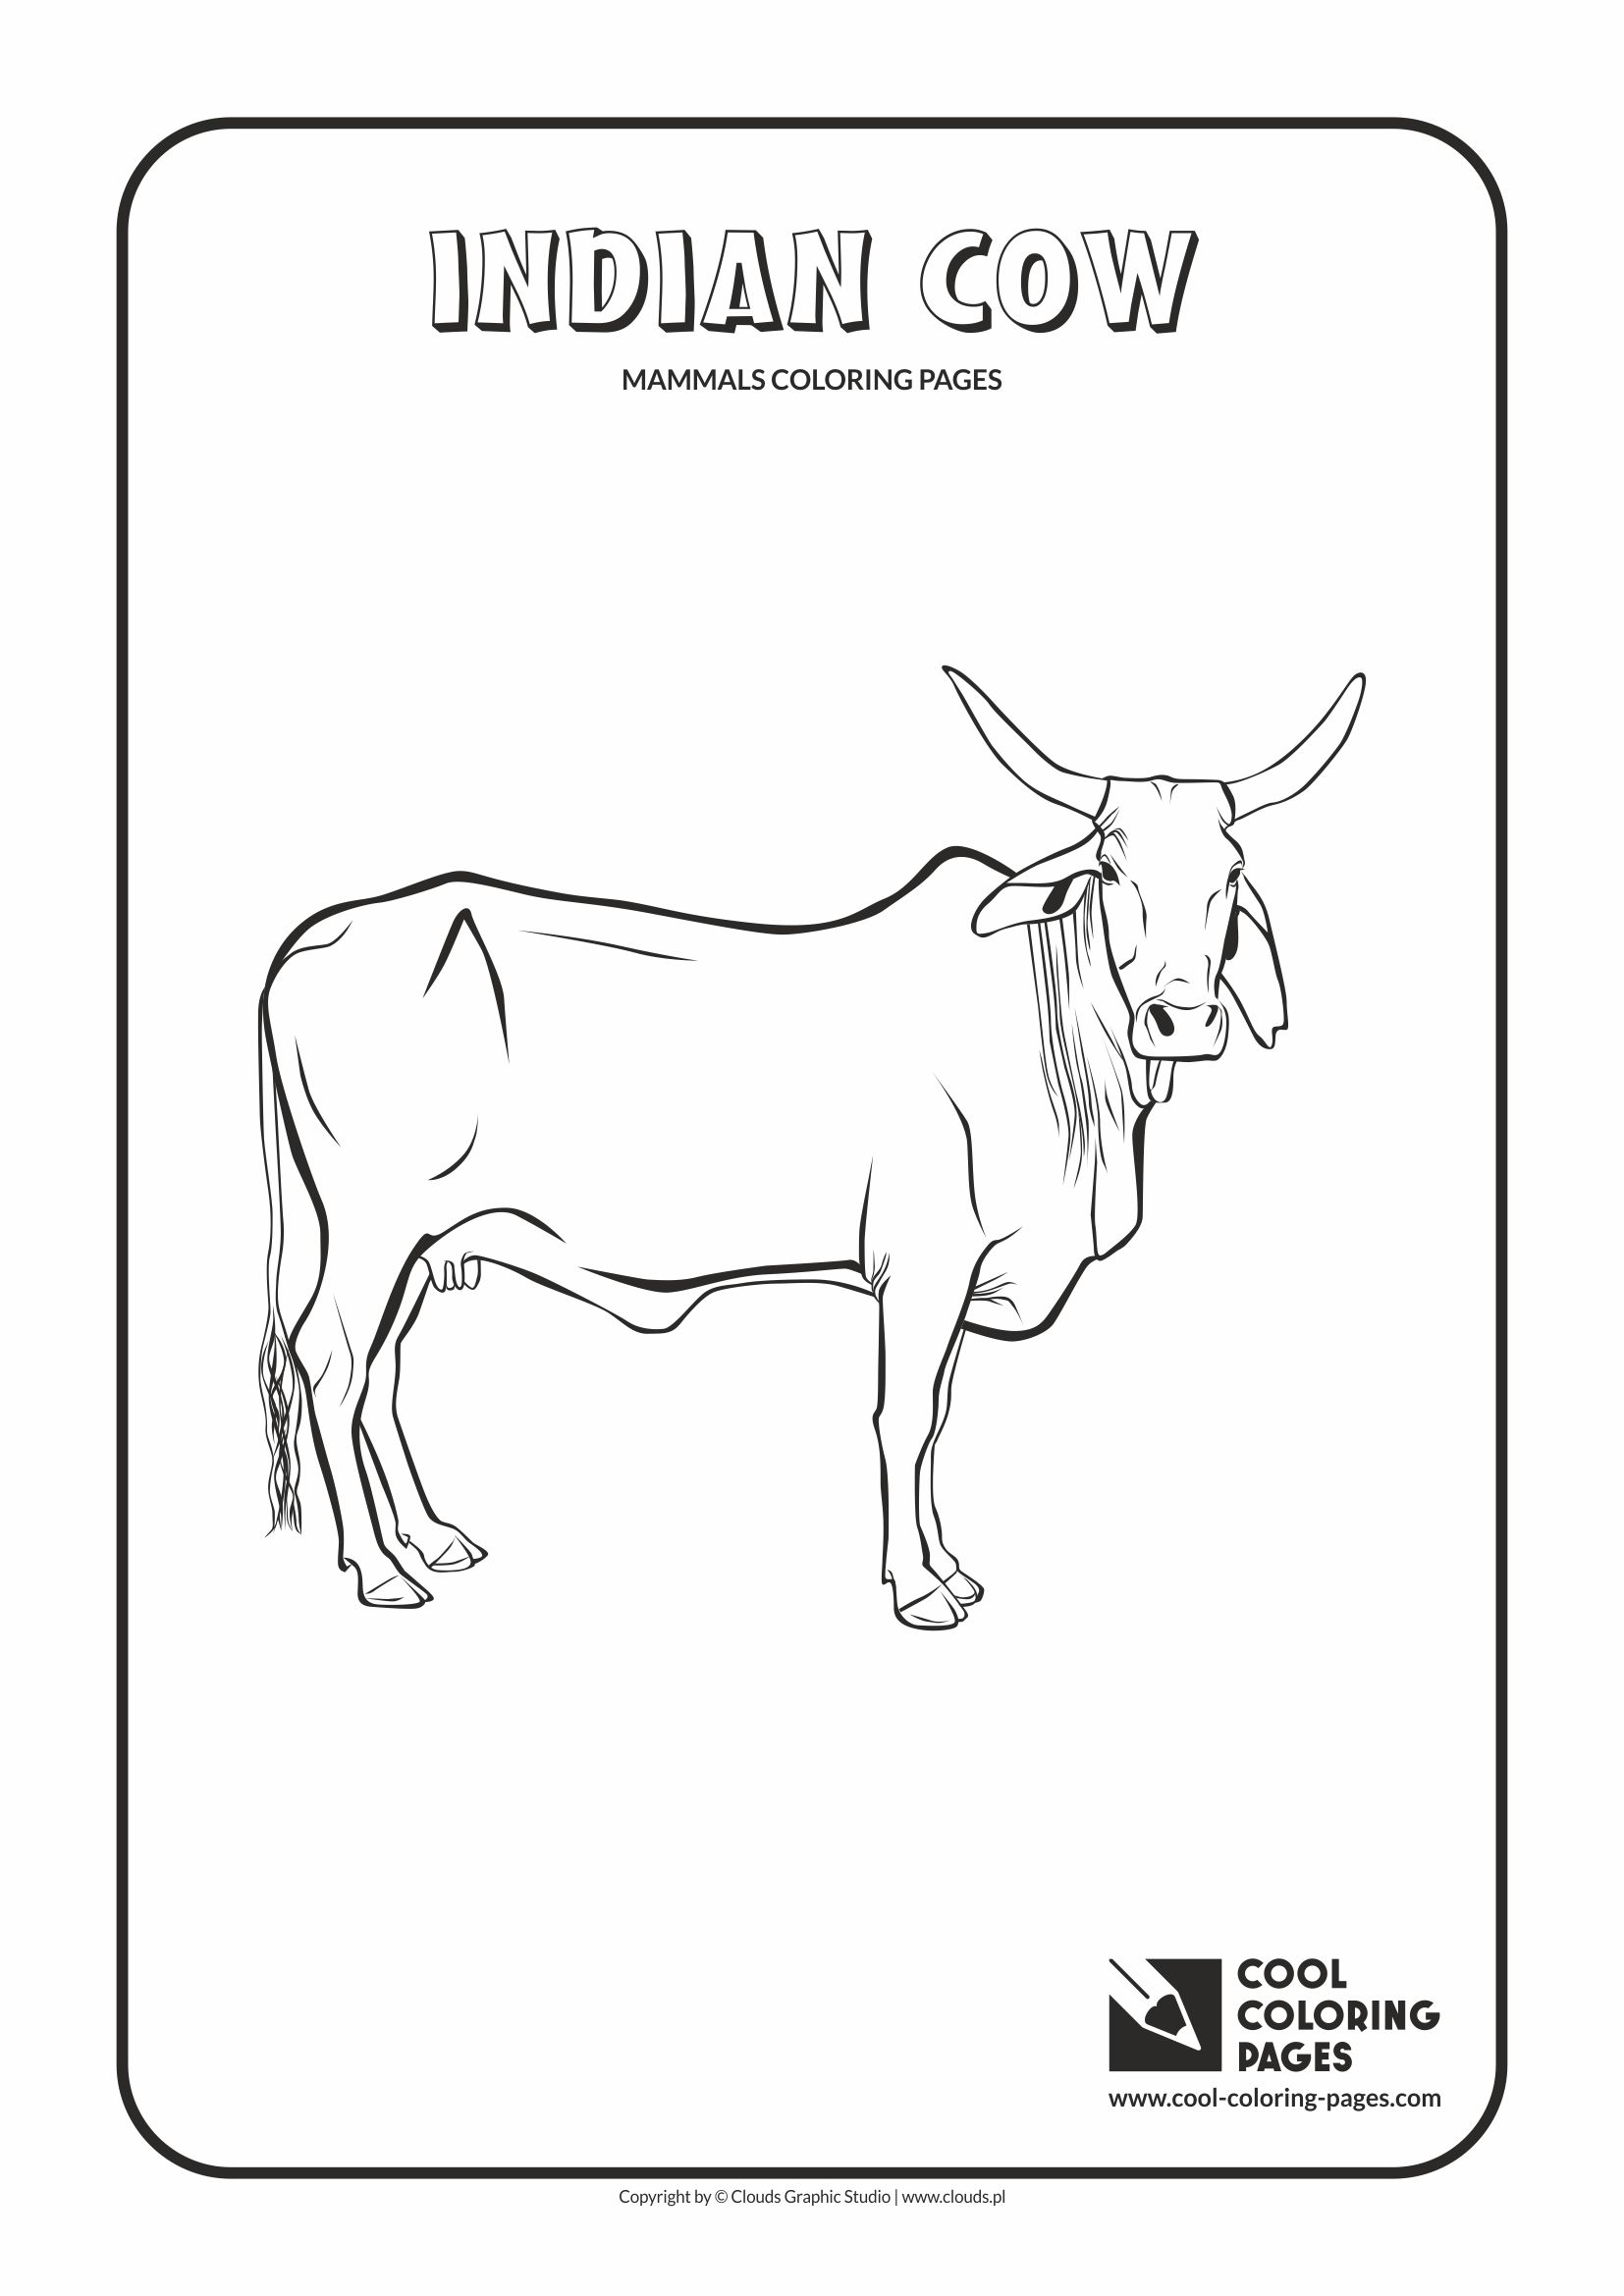 Cool Coloring Pages Indian cow coloring page - Cool Coloring Pages ...